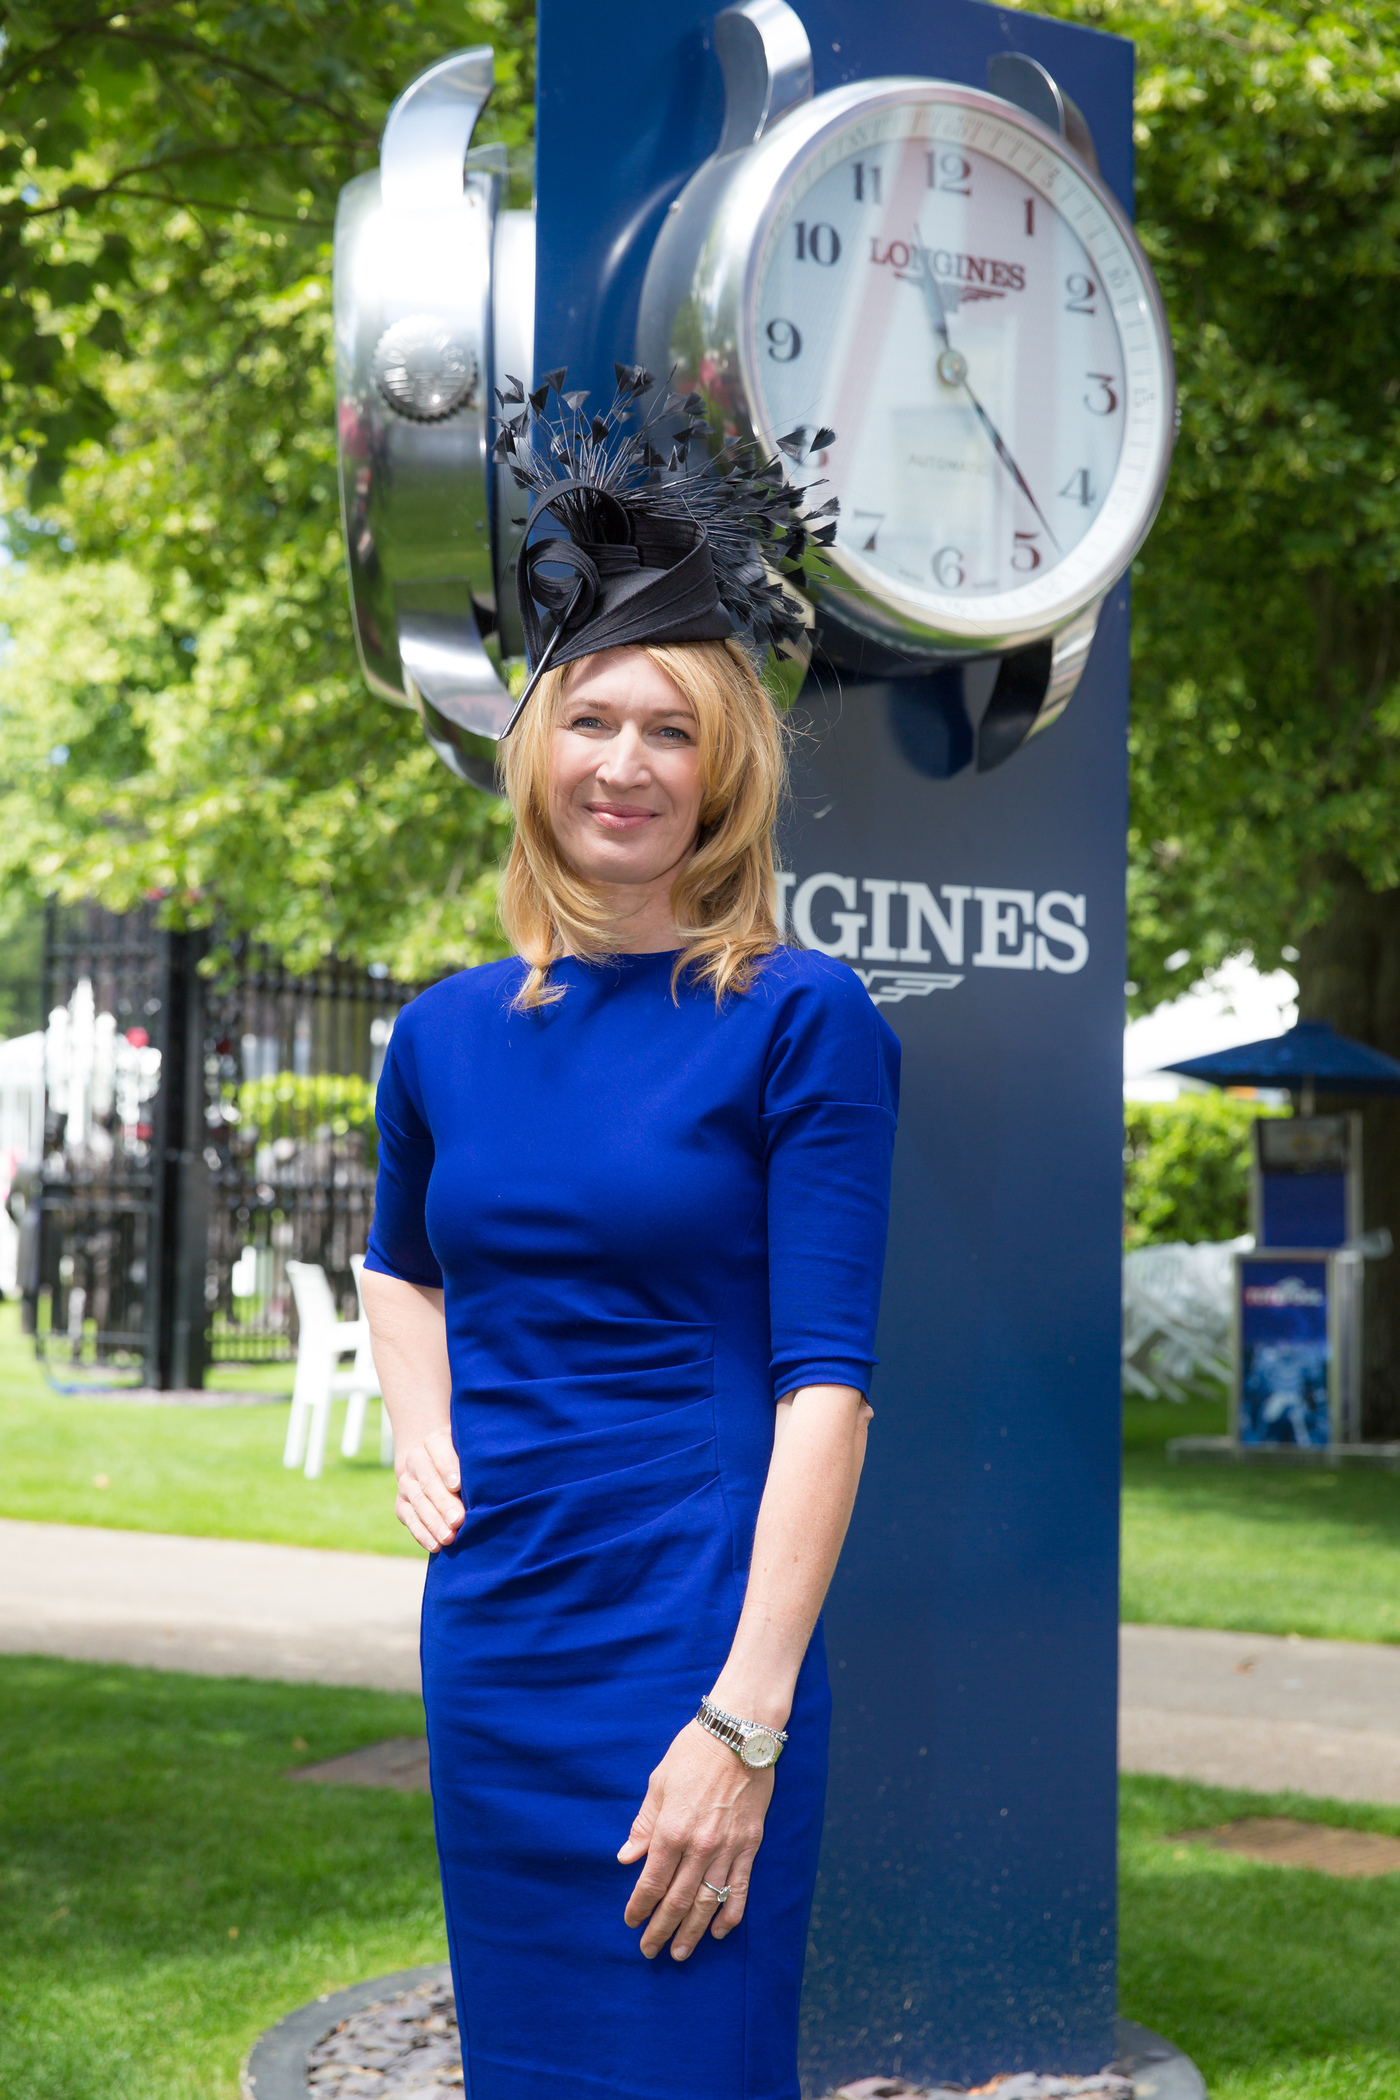 Longines Flat Racing Event: Tennis Legend Stefanie Graf joins Longines at Royal Ascot for an English Day at the Races 3